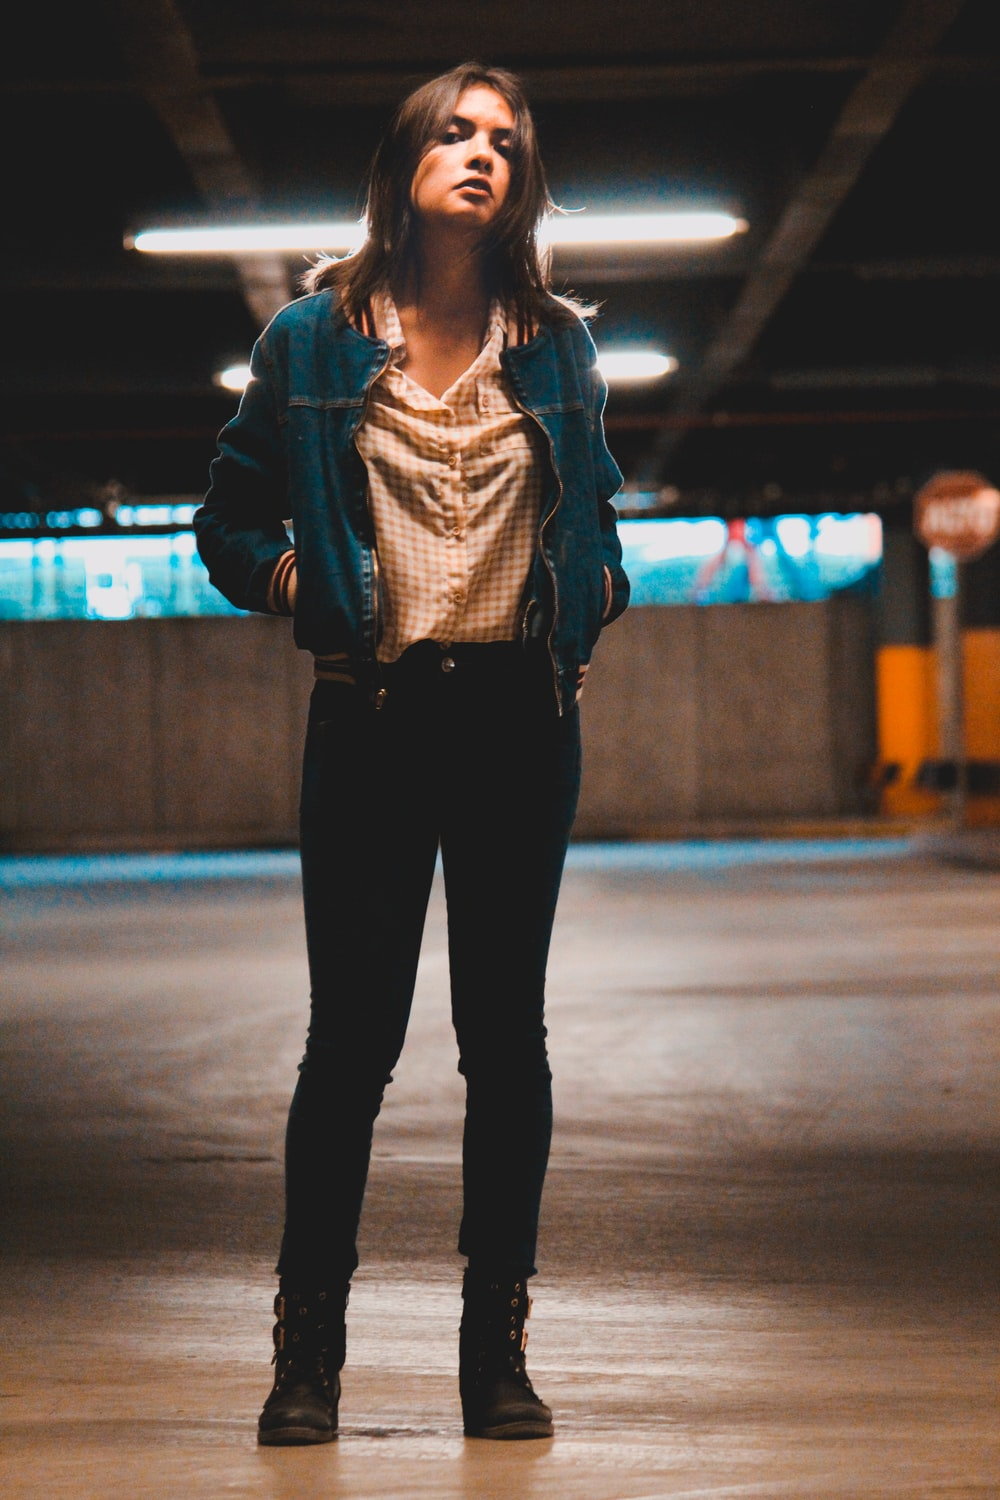 woman in gray jacket and black pants standing on gray pavement